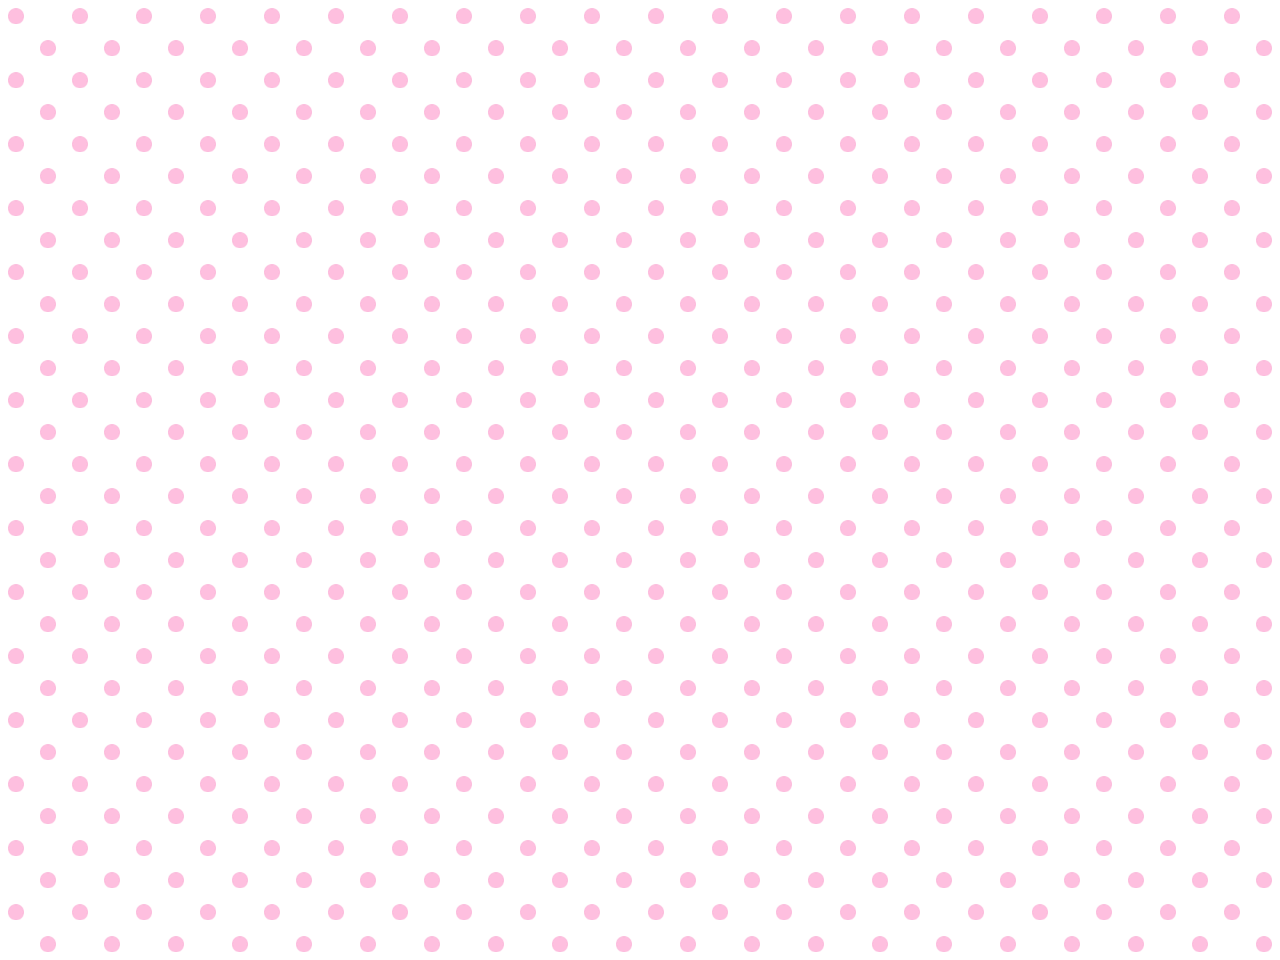 Polka-dotted background for twitter or other (Pink